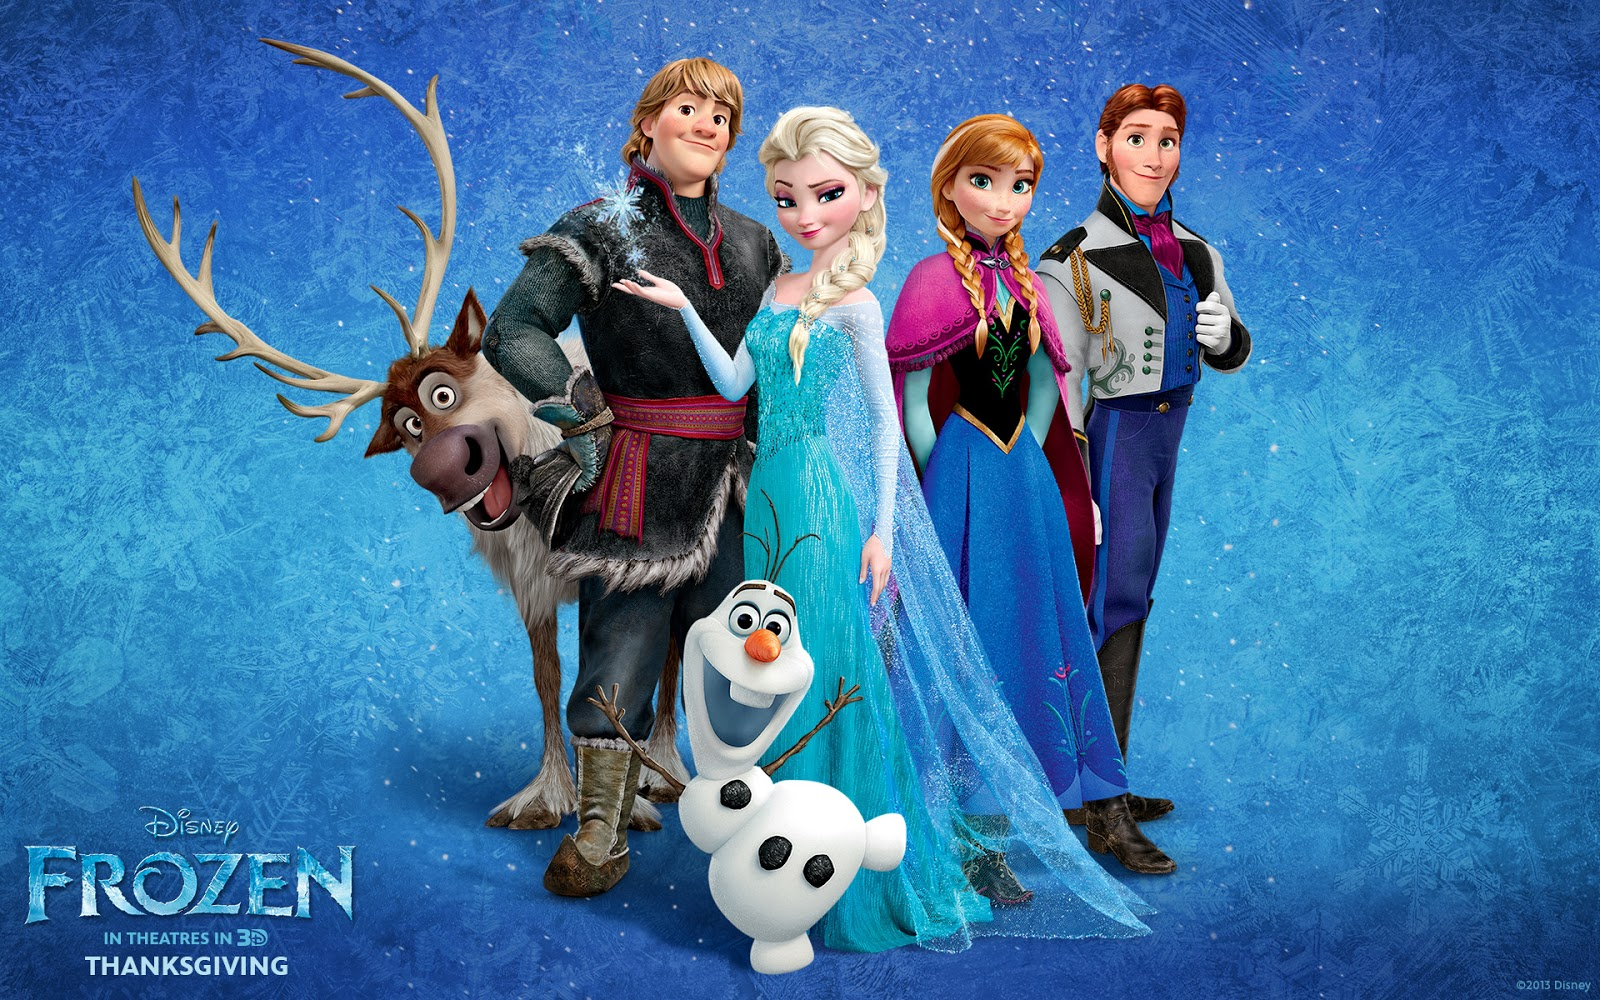 The main characters of Frozen.